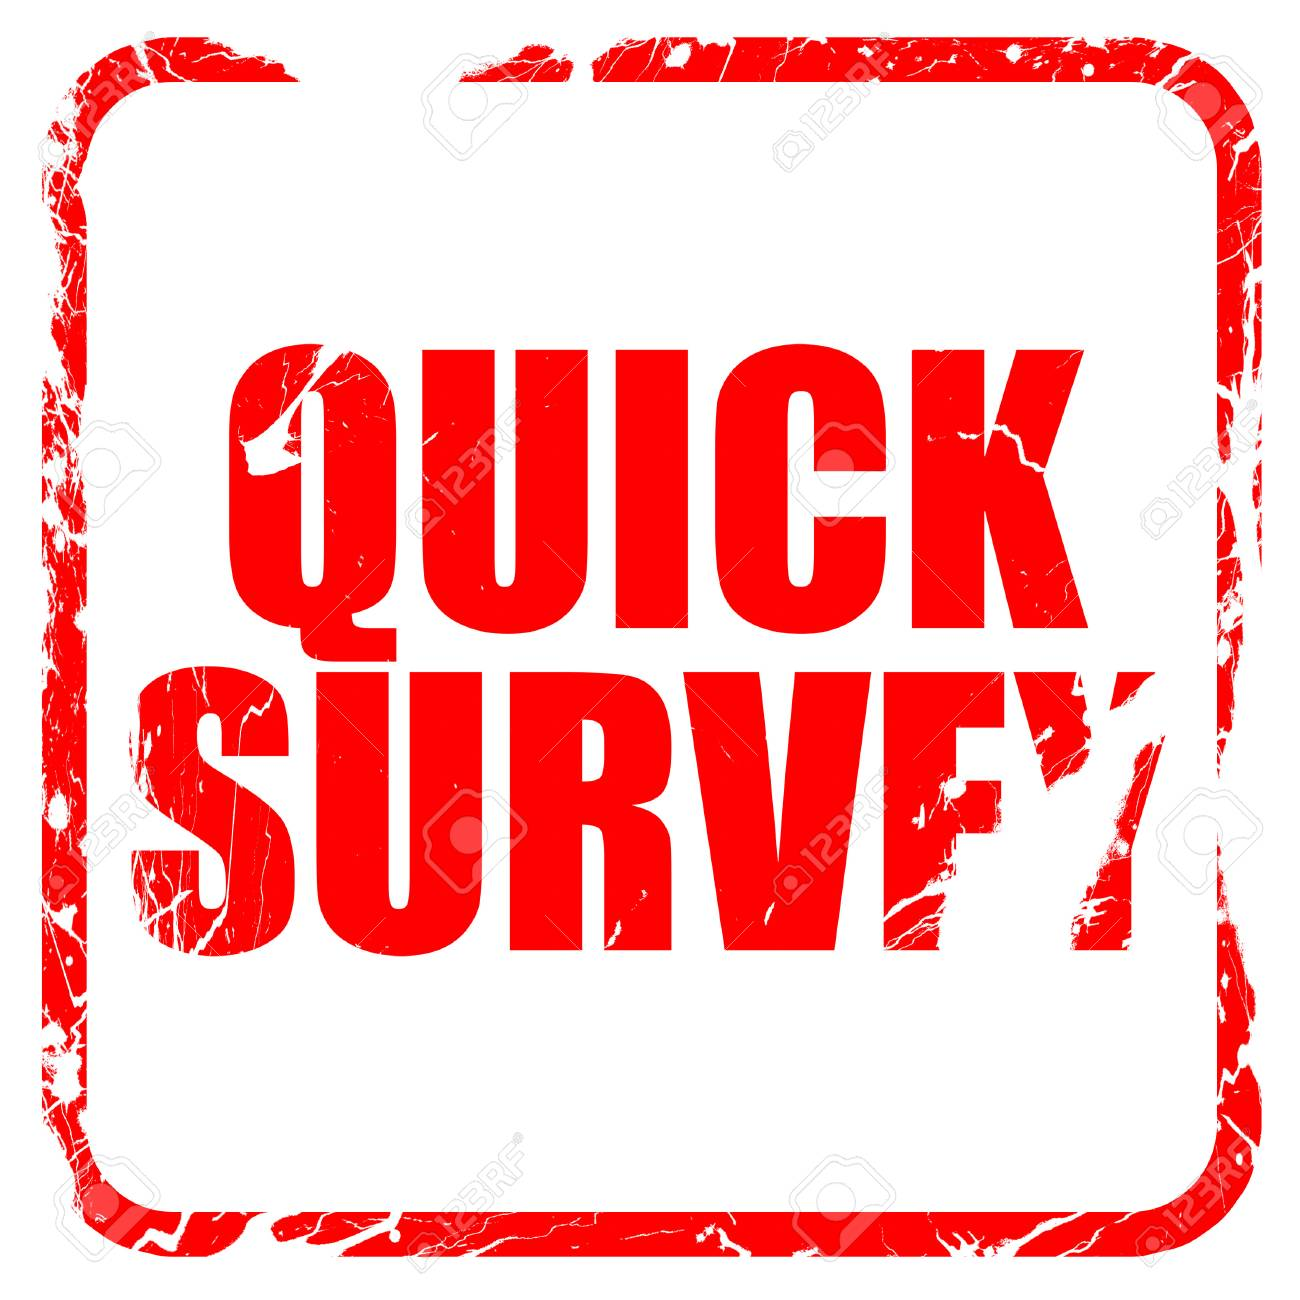 quick survey red rubber stamp with grunge edges stock photo